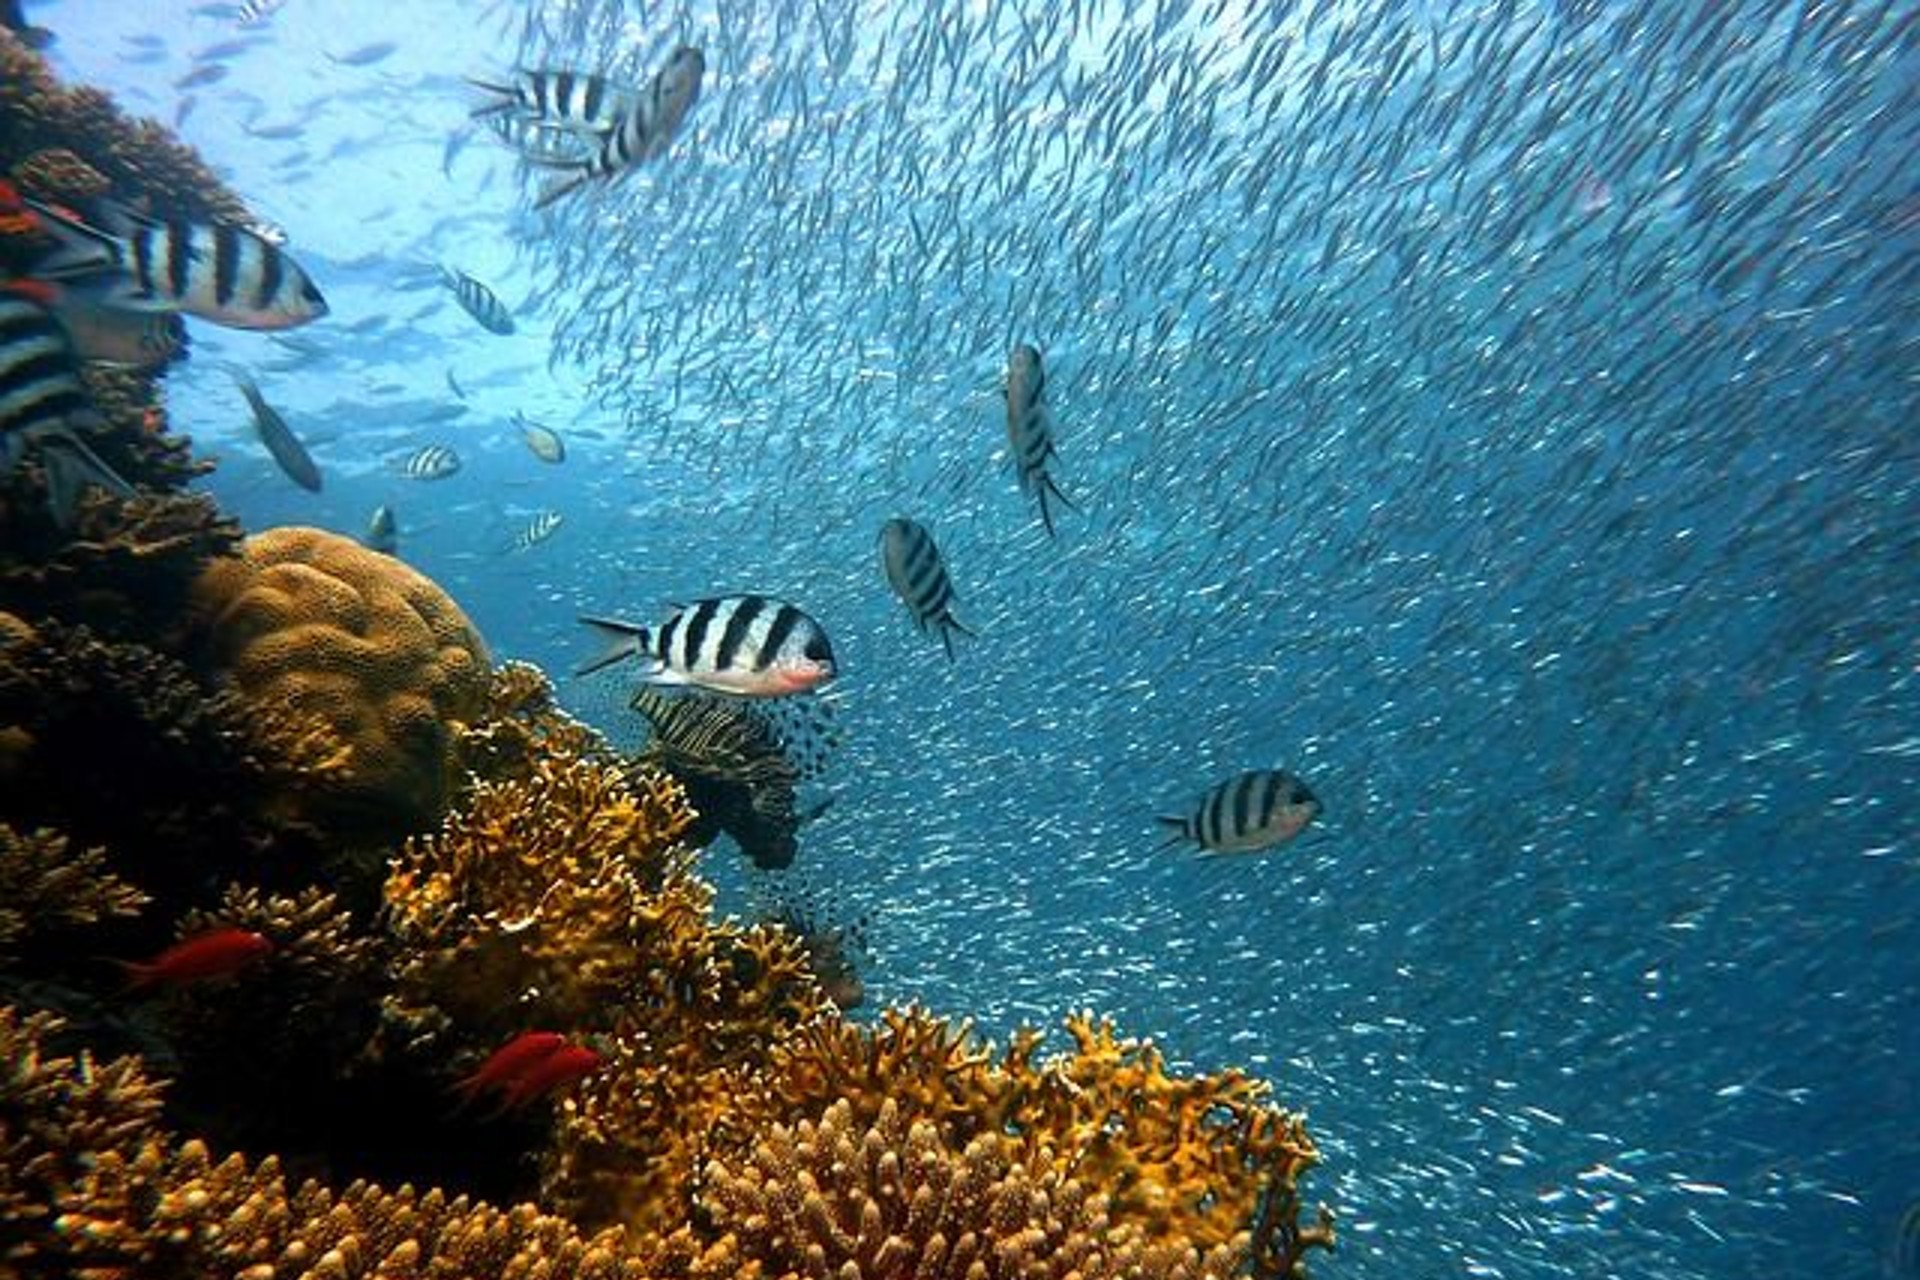 school of fish and corals in clear water